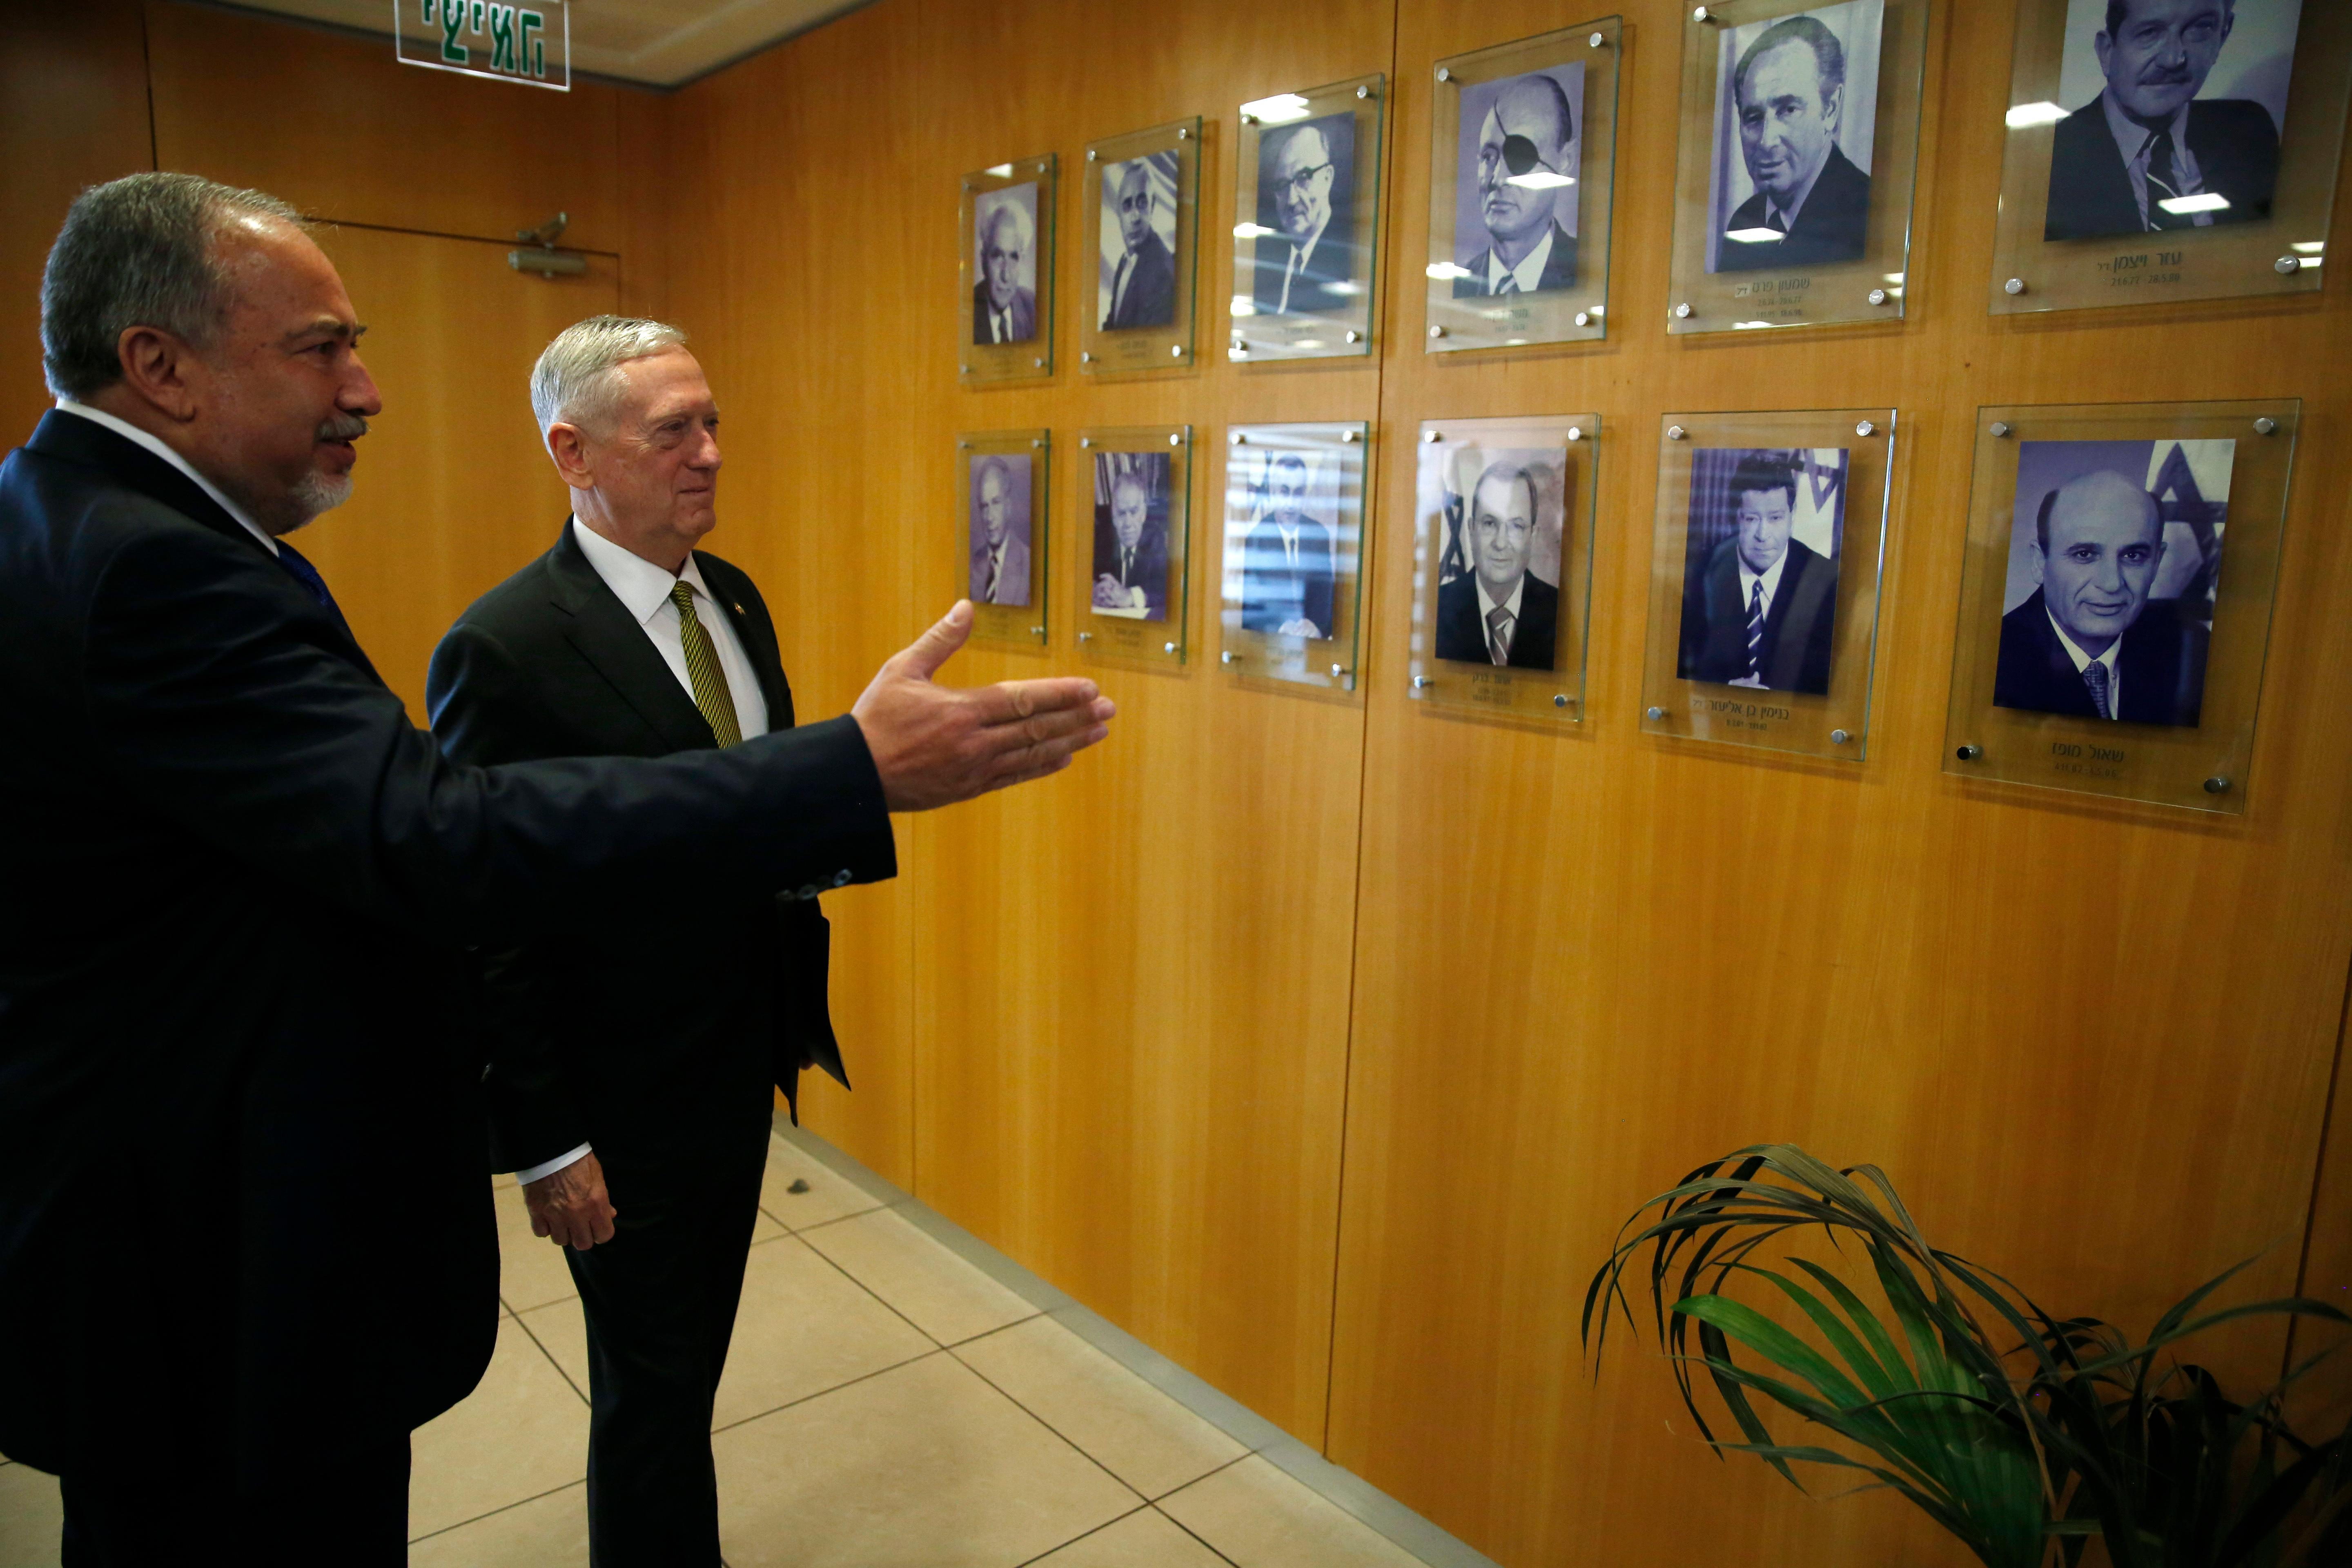 Israeli Defense Minister Avigdor Lieberman, left, shows U.S. Defense Secretary Jim Mattis pictures of his predecessors before they take their seats for a meeting in his office at the Defense Ministry in Tel Aviv, Israel, Friday, April 21, 2017. (Jonathan Ernst/Pool Photo via AP)